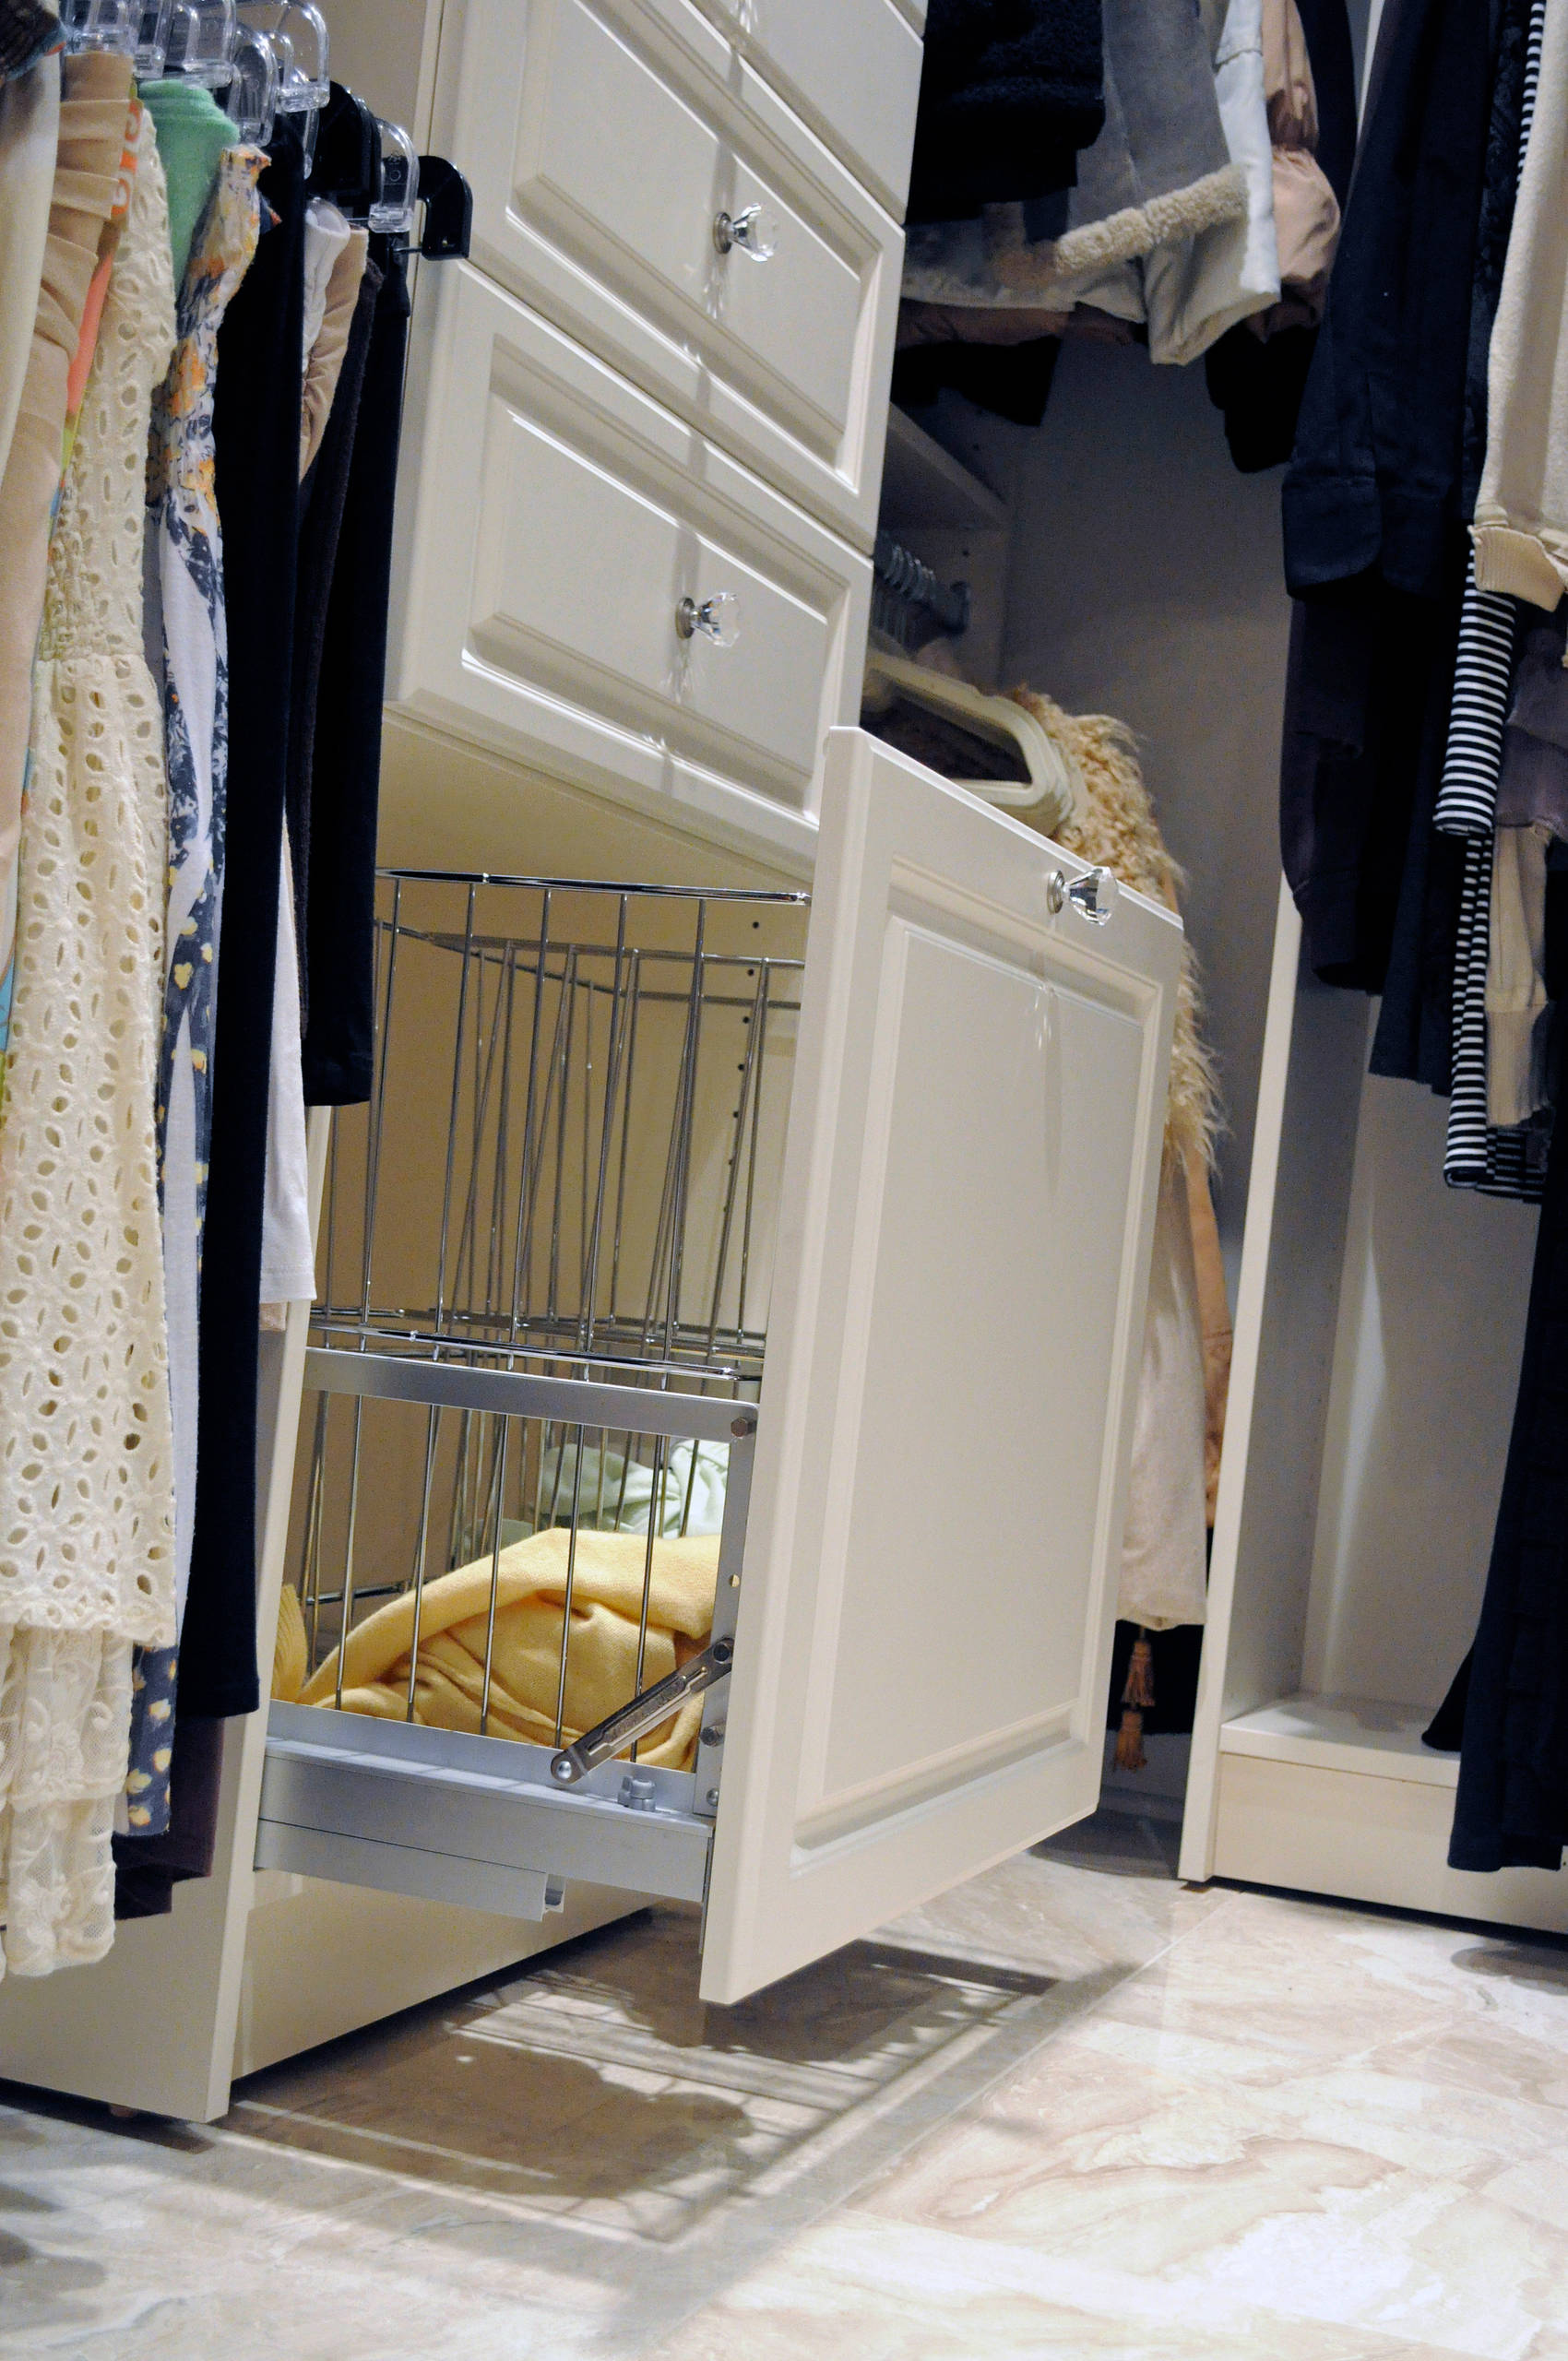 A double pull out laundry hamper with soft close draw slides.